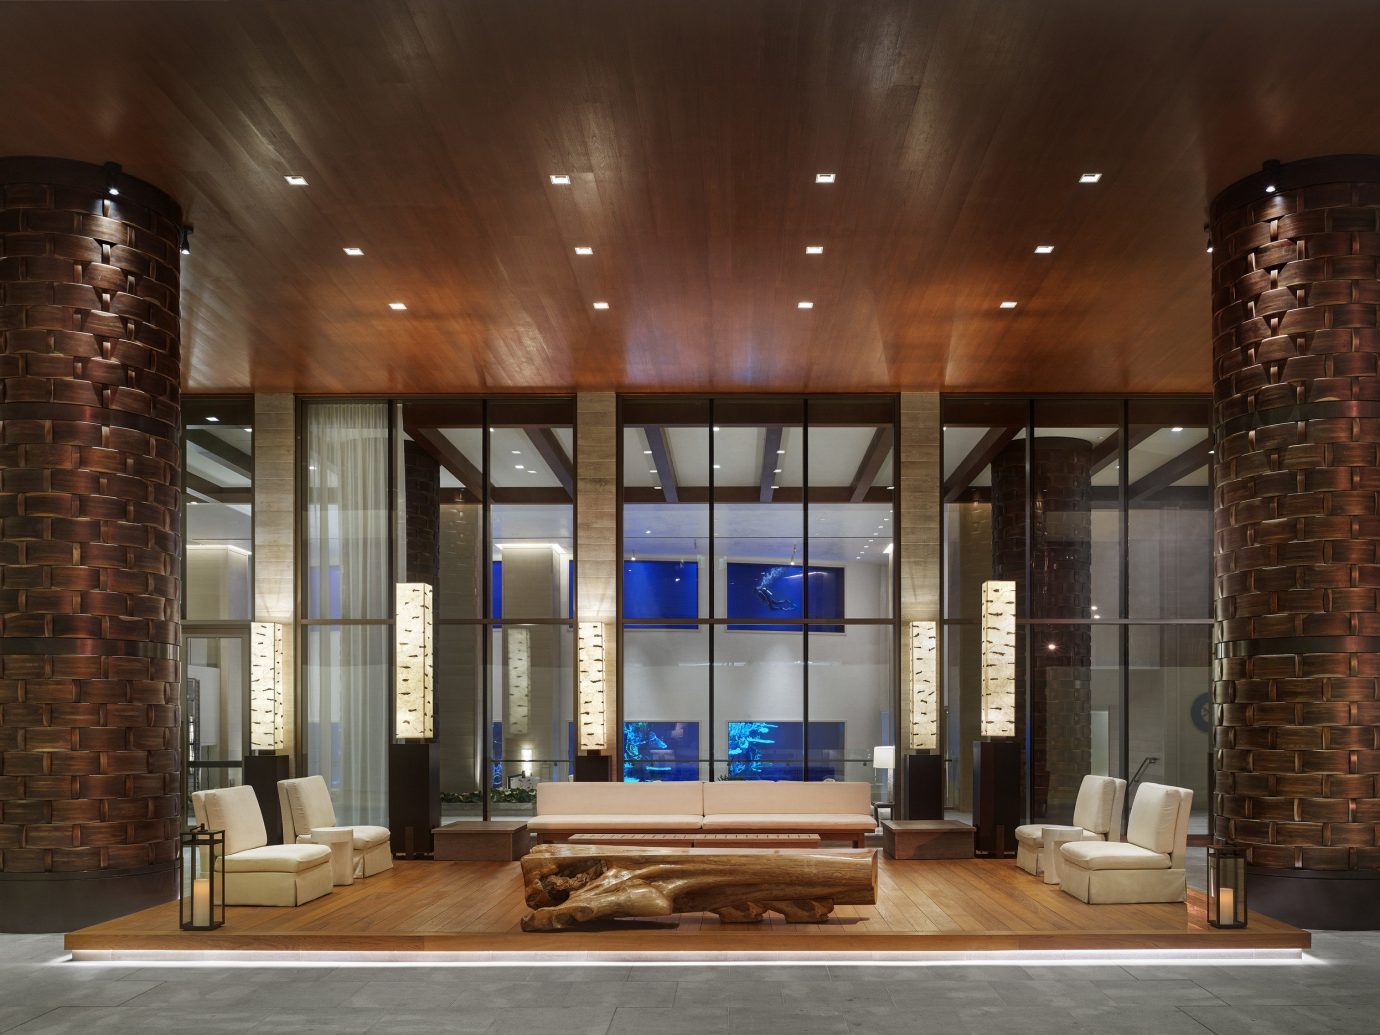 Boutique Hotels Hawaii Honolulu Hotels indoor ceiling Lobby interior design counter facade building condominium furniture